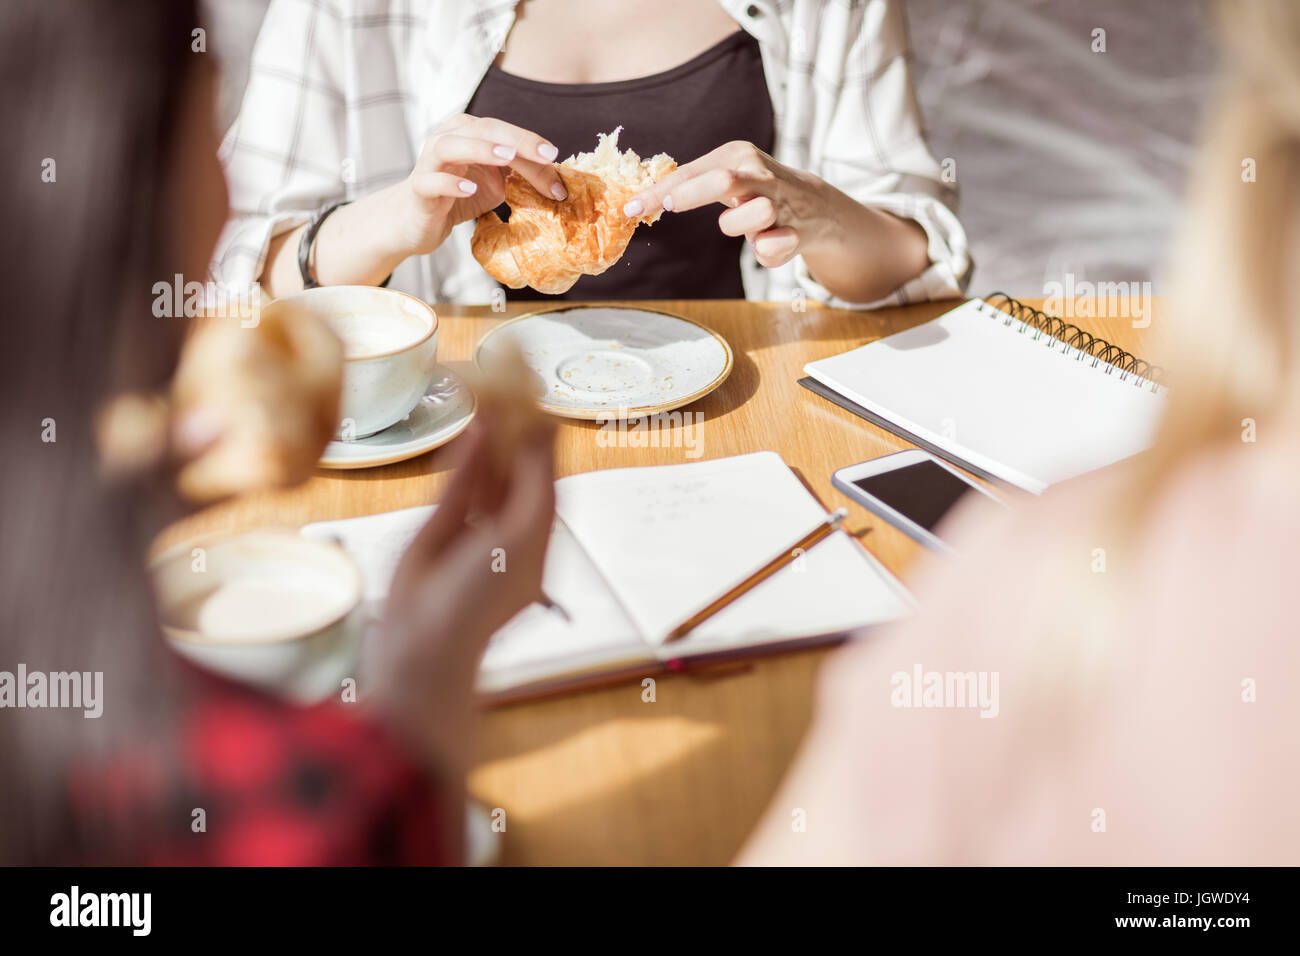 young girls eating croissants and drinking coffee at cafe, coffee break - Stock Image